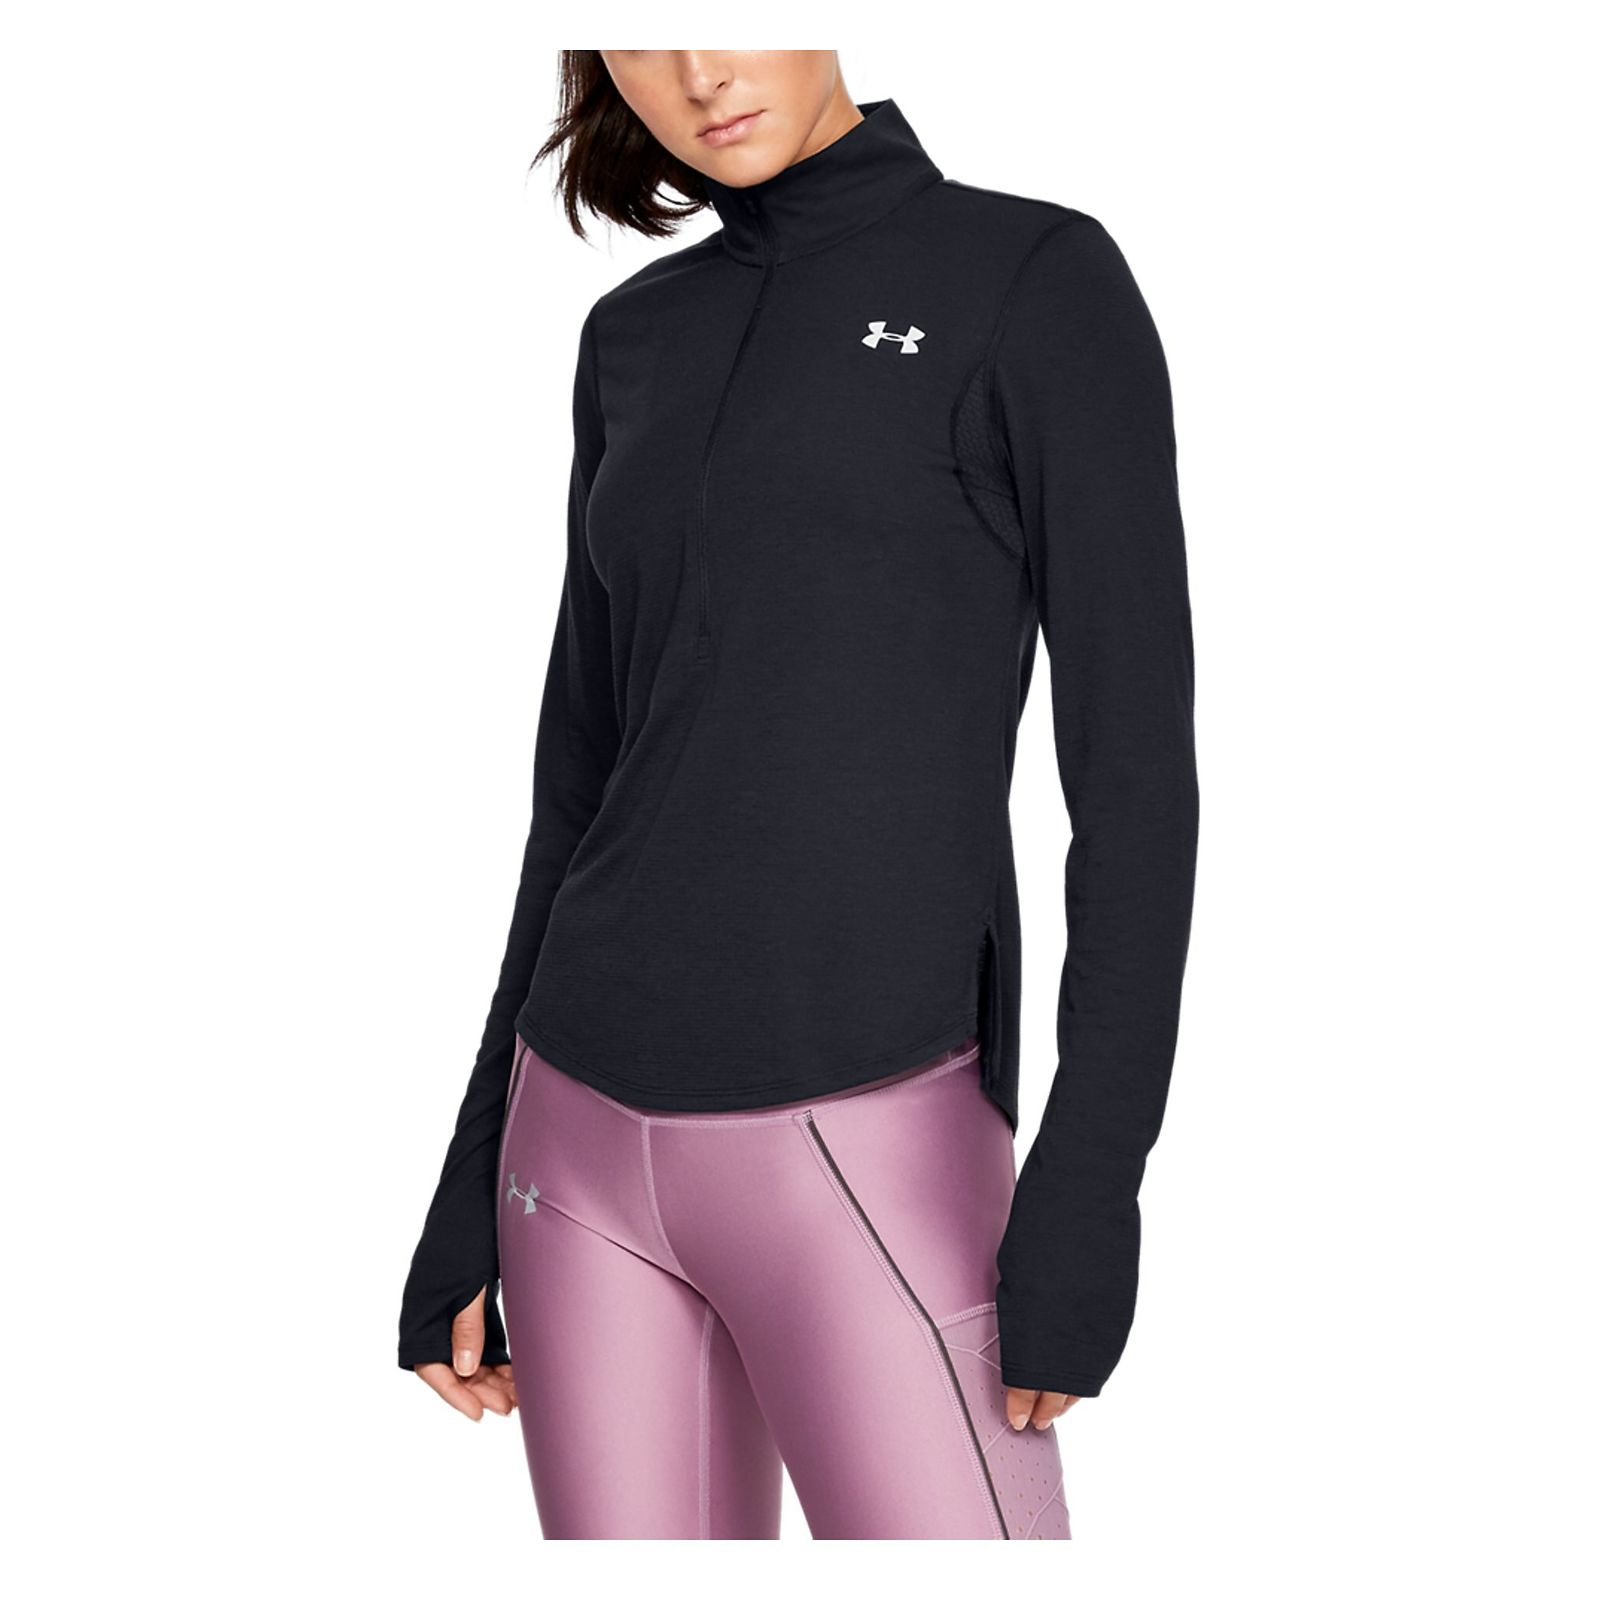 Bluza damska treningowa Under Armour Streaker 1/2 Zip 1326502